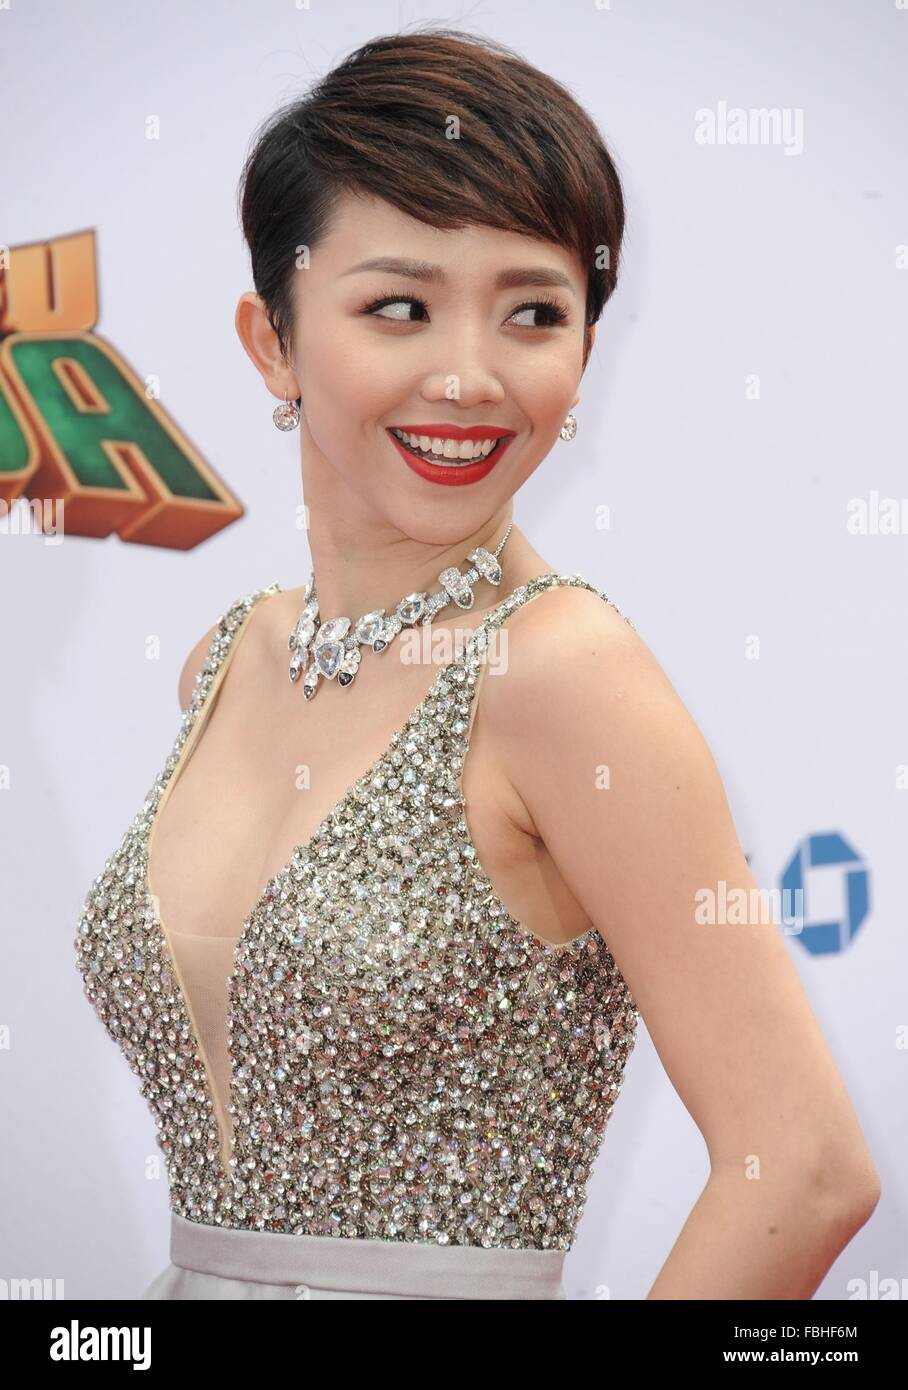 Los Angeles, CA, USA. 16th Jan, 2016. Toc Tien at arrivals for KUNG FU PANDA 3 Premiere, TCL Chinese 6 Theatres - Stock Image